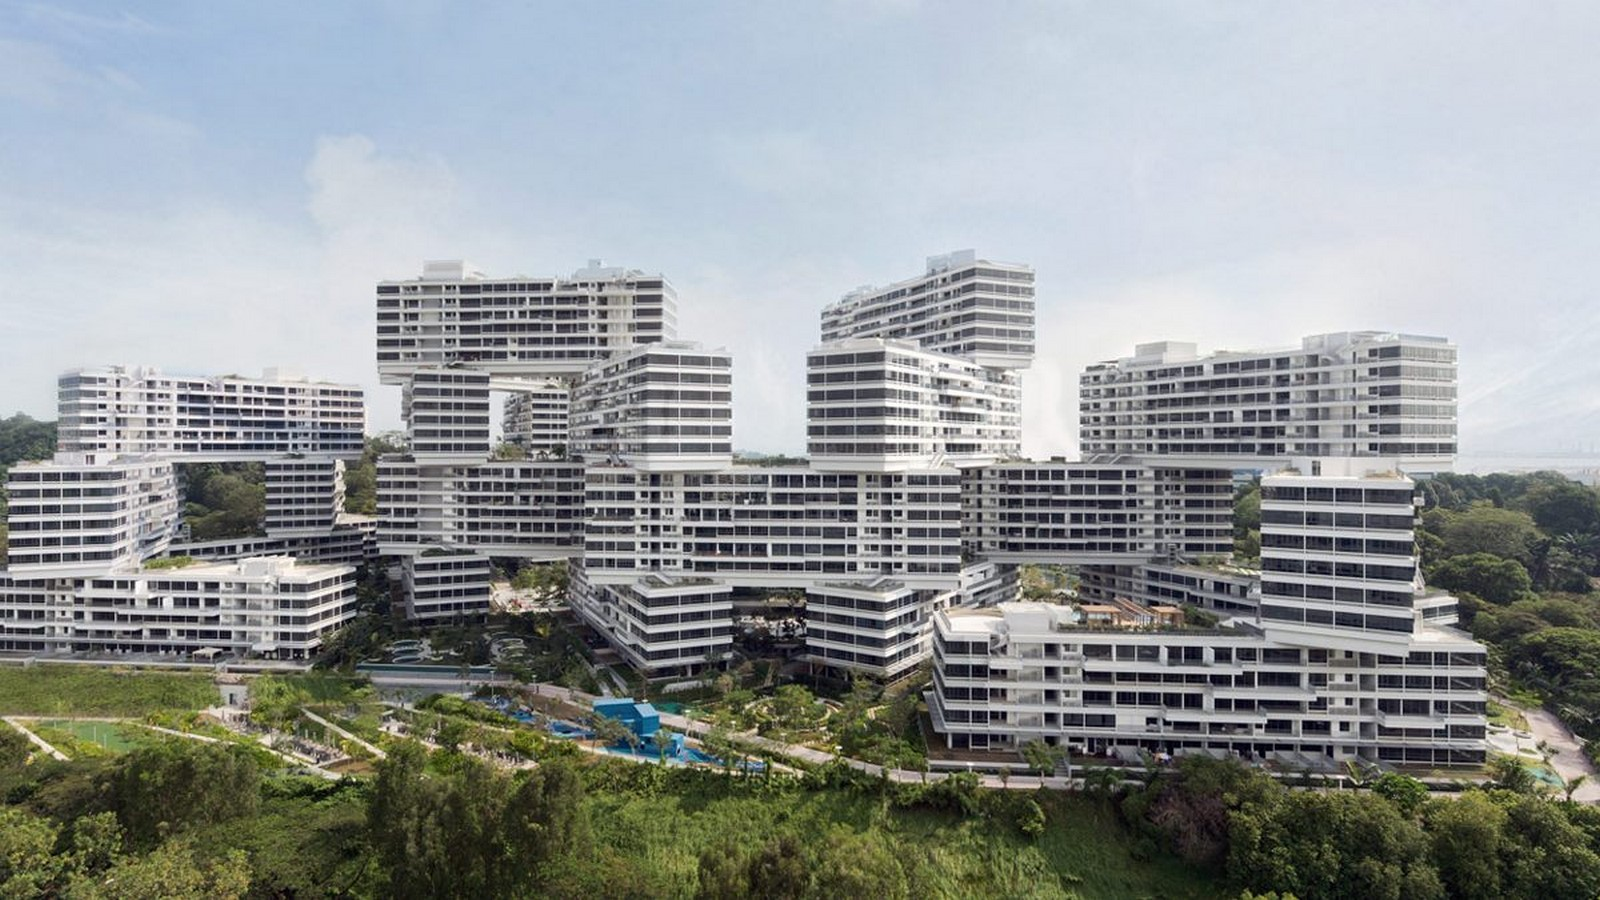 The Interlace by OMA- A new direction for cities - Sheet1